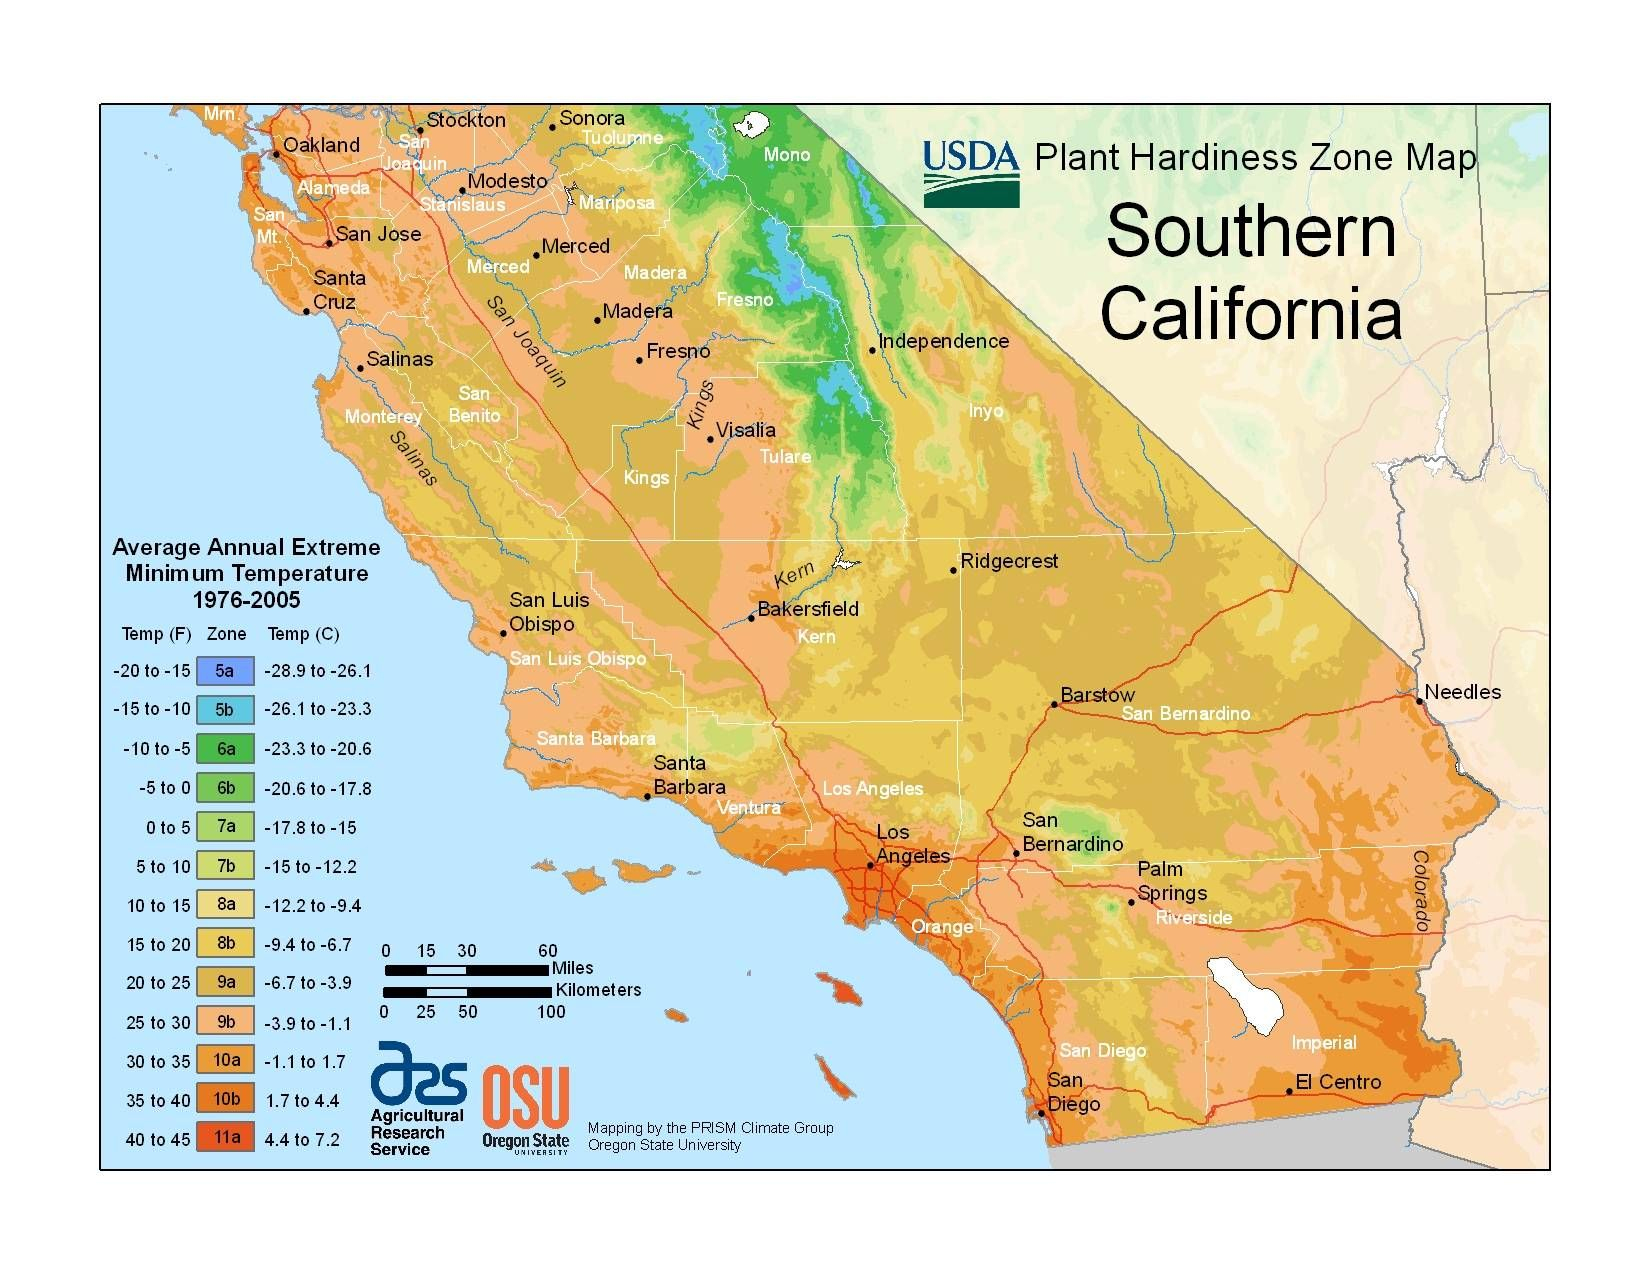 Southern California Hardiness Zone Map I Guess I'm 10B Or Maybe 10A - Growing Zone Map California